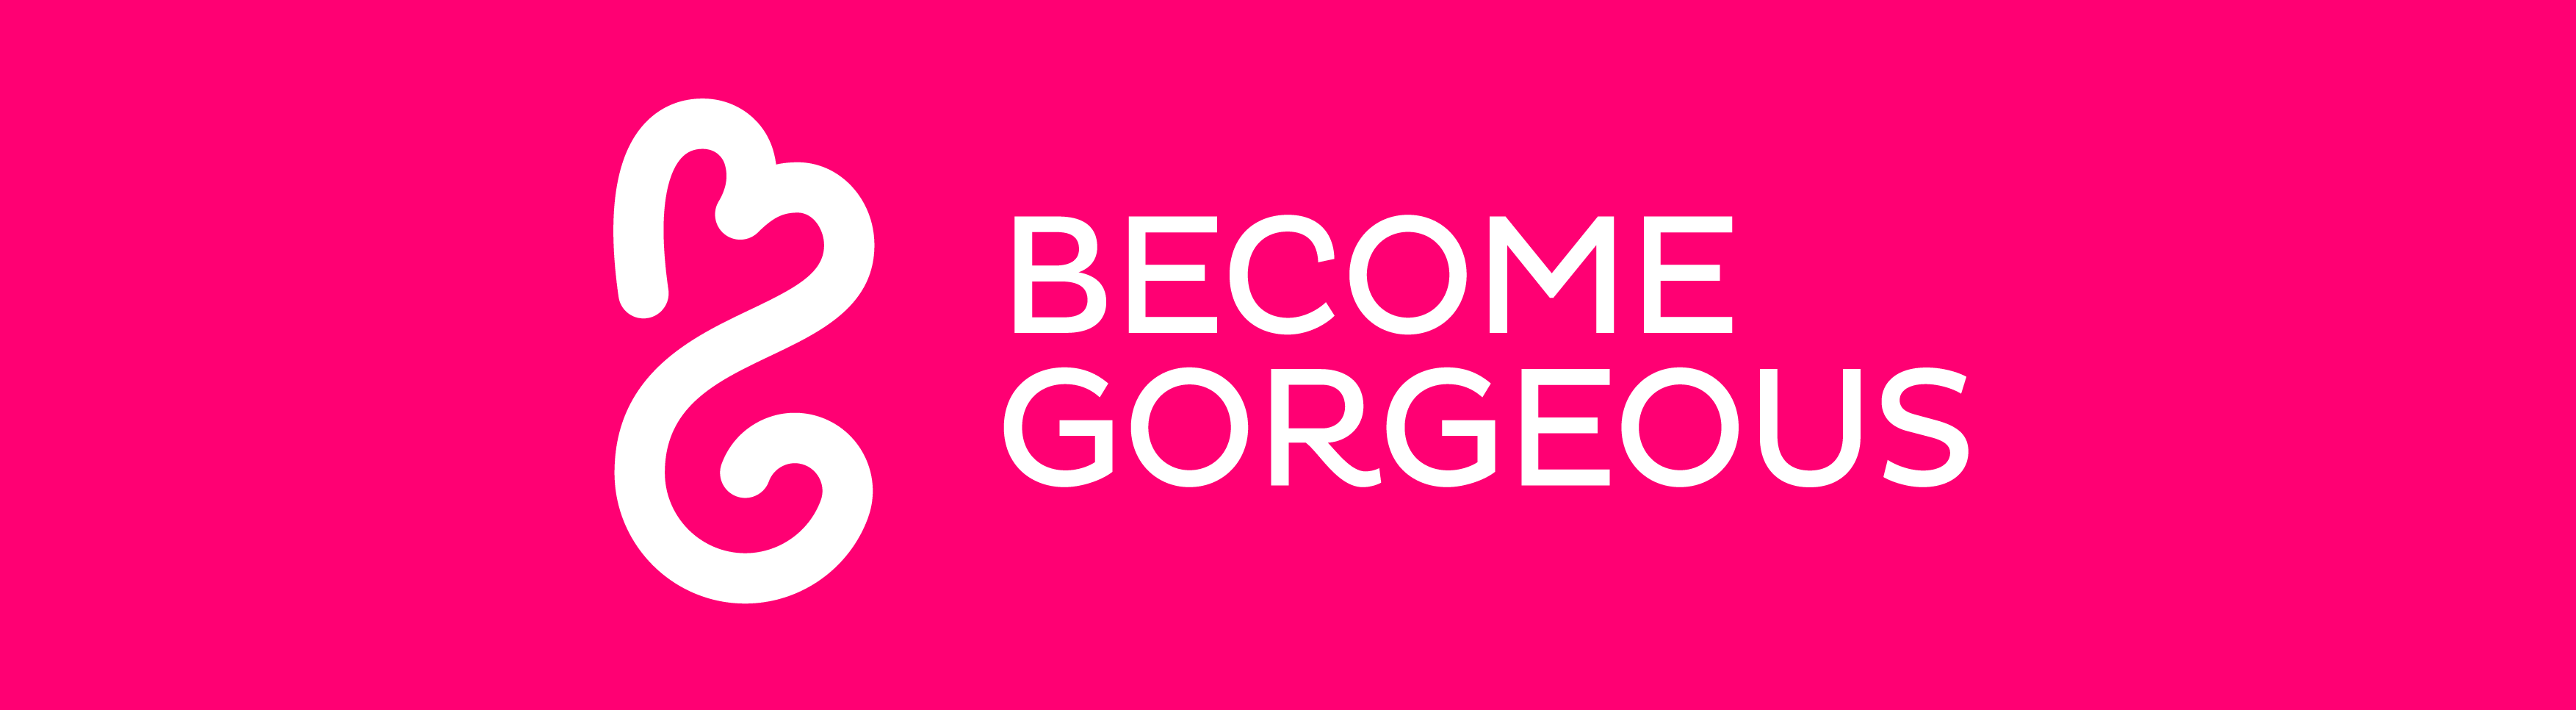 becomegorgeous logo